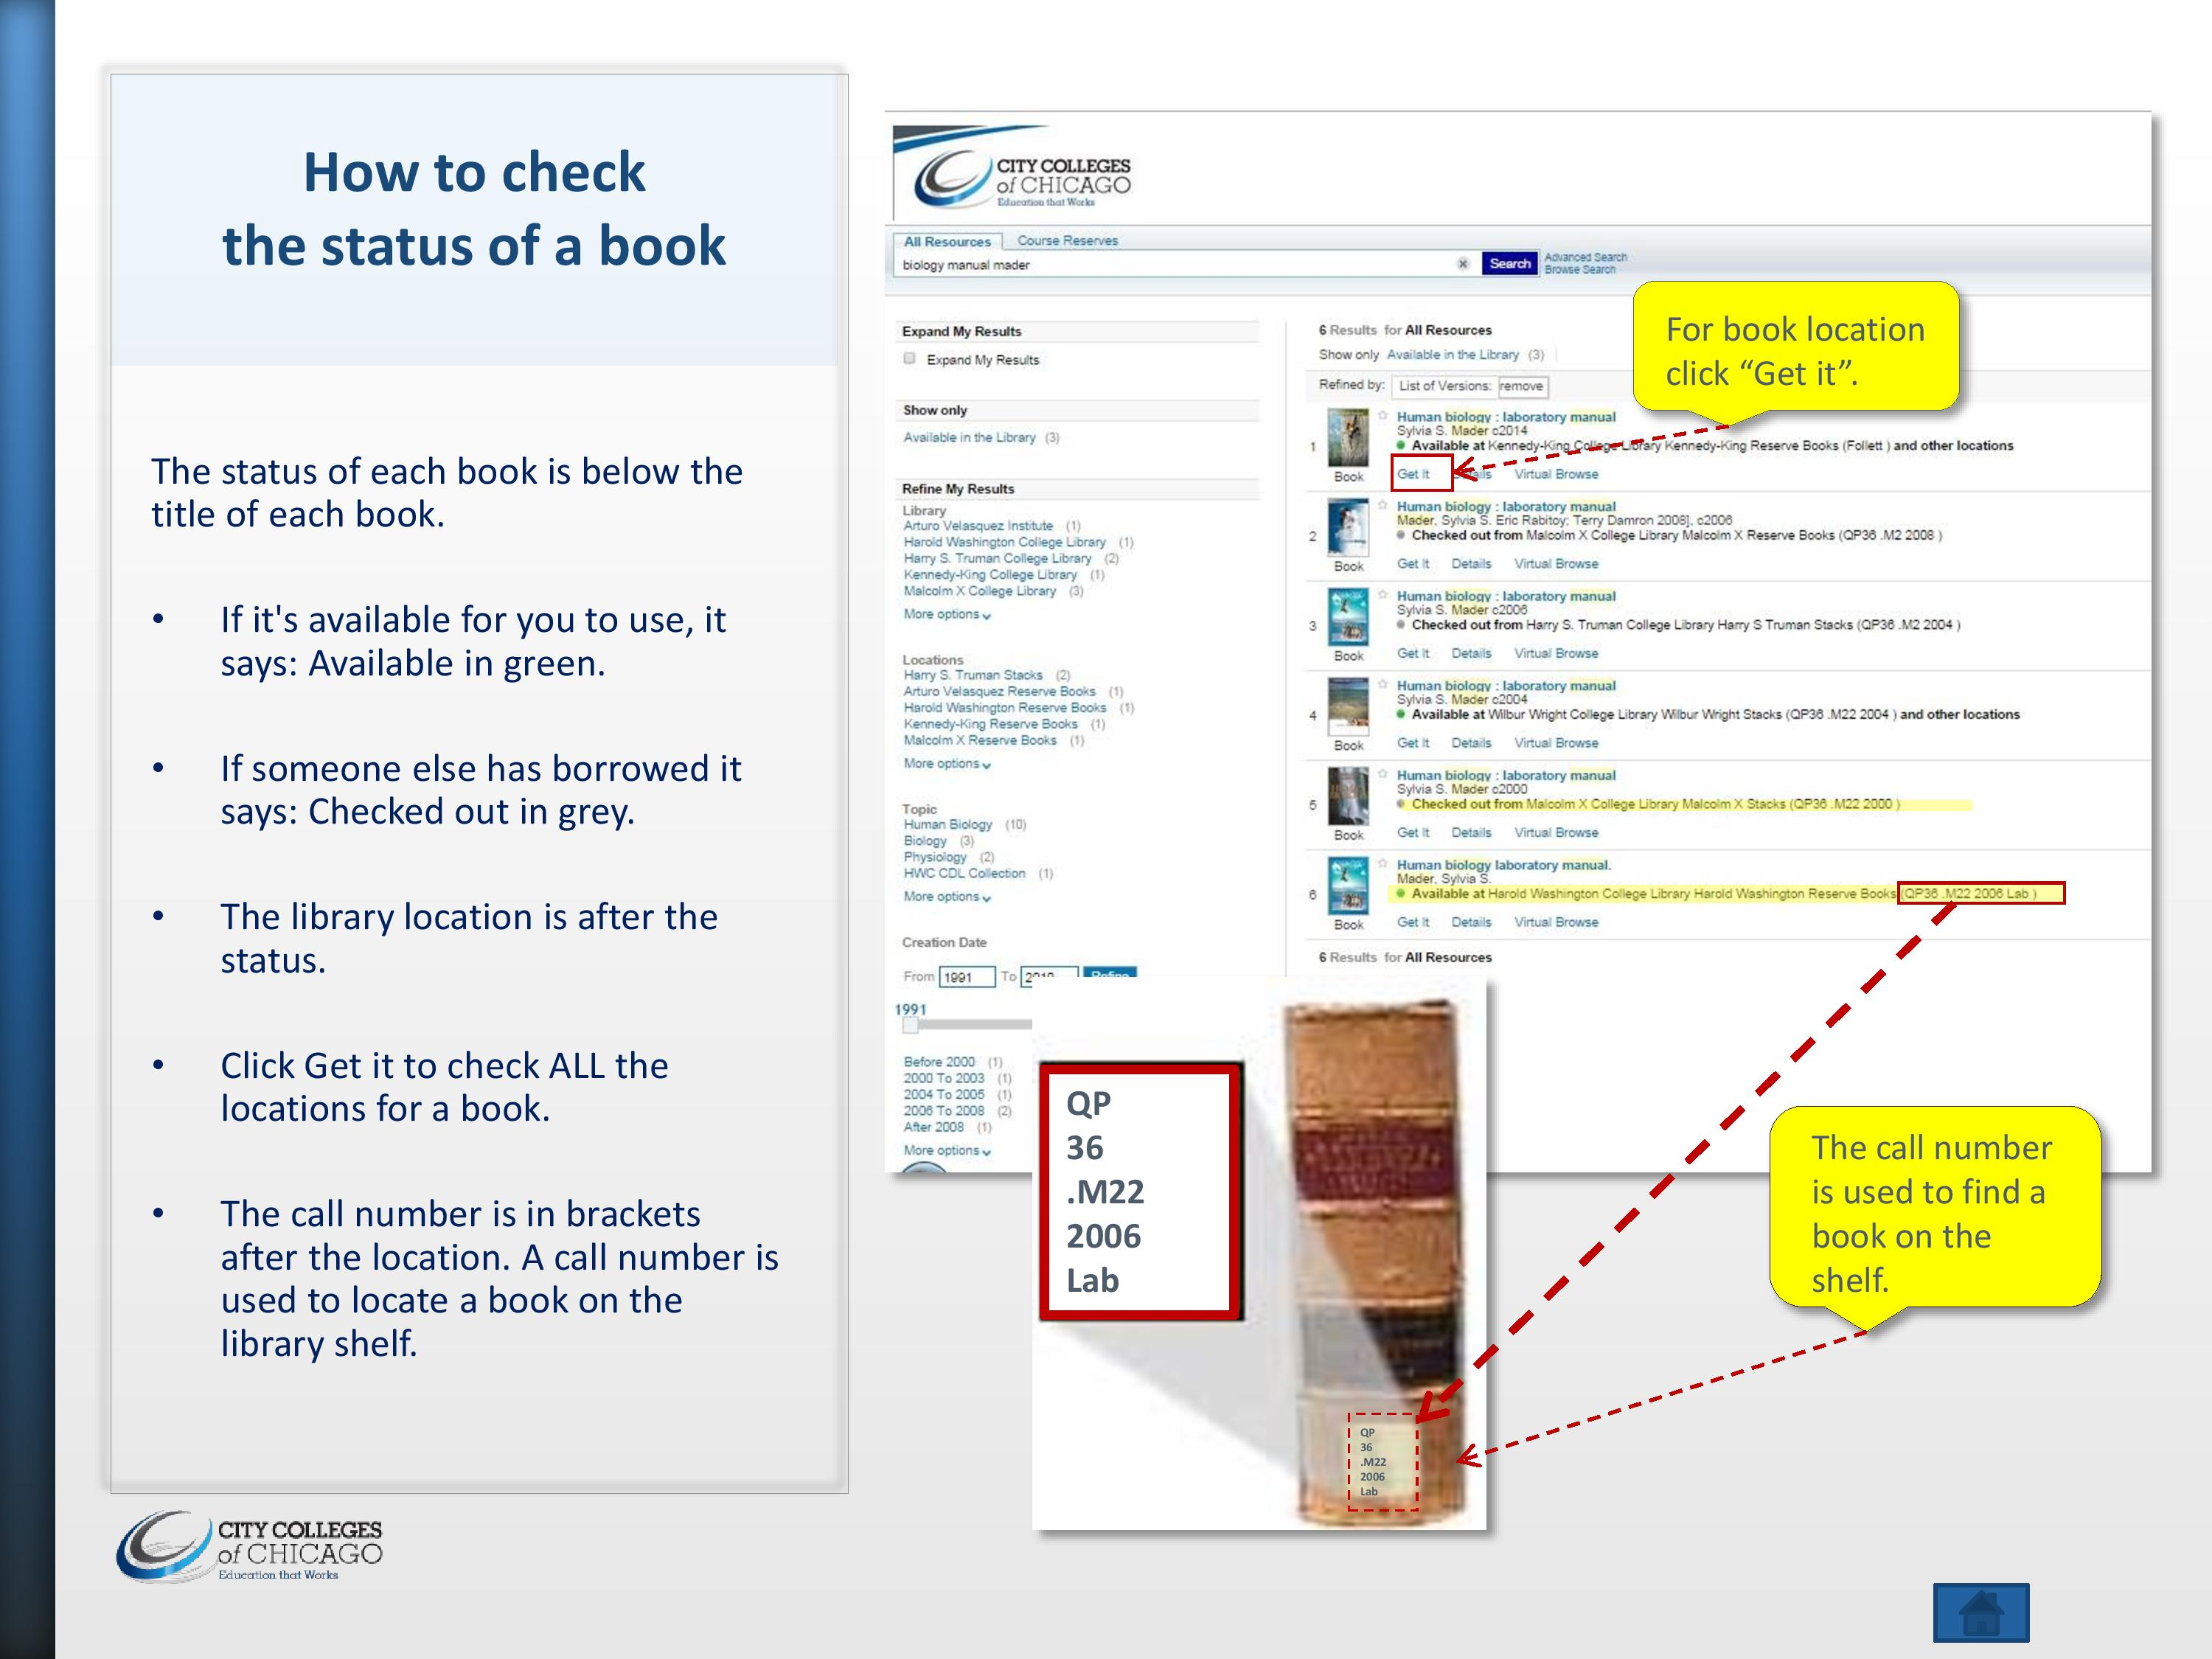 The image shows a screenshot of the library catalog showing the status of a book.